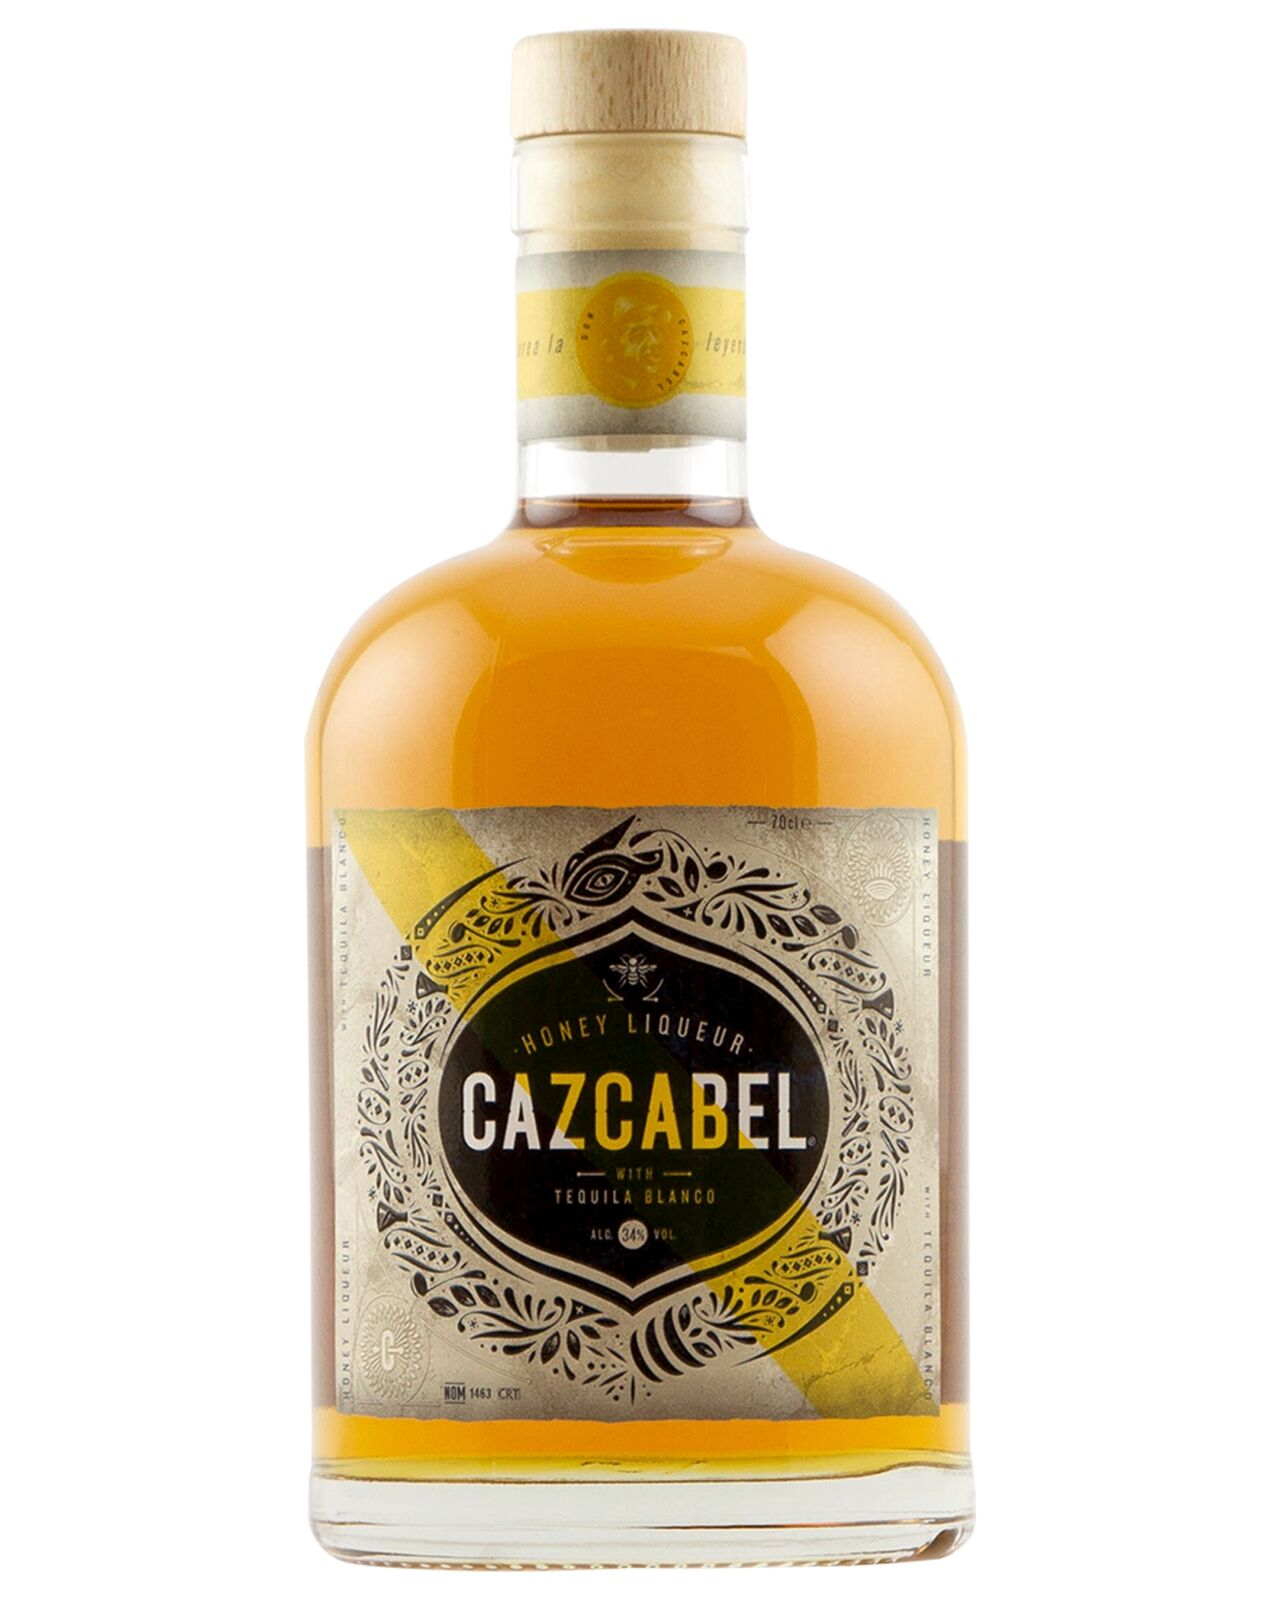 Cazcabel Honey Tequila 700ml bottle Mexico